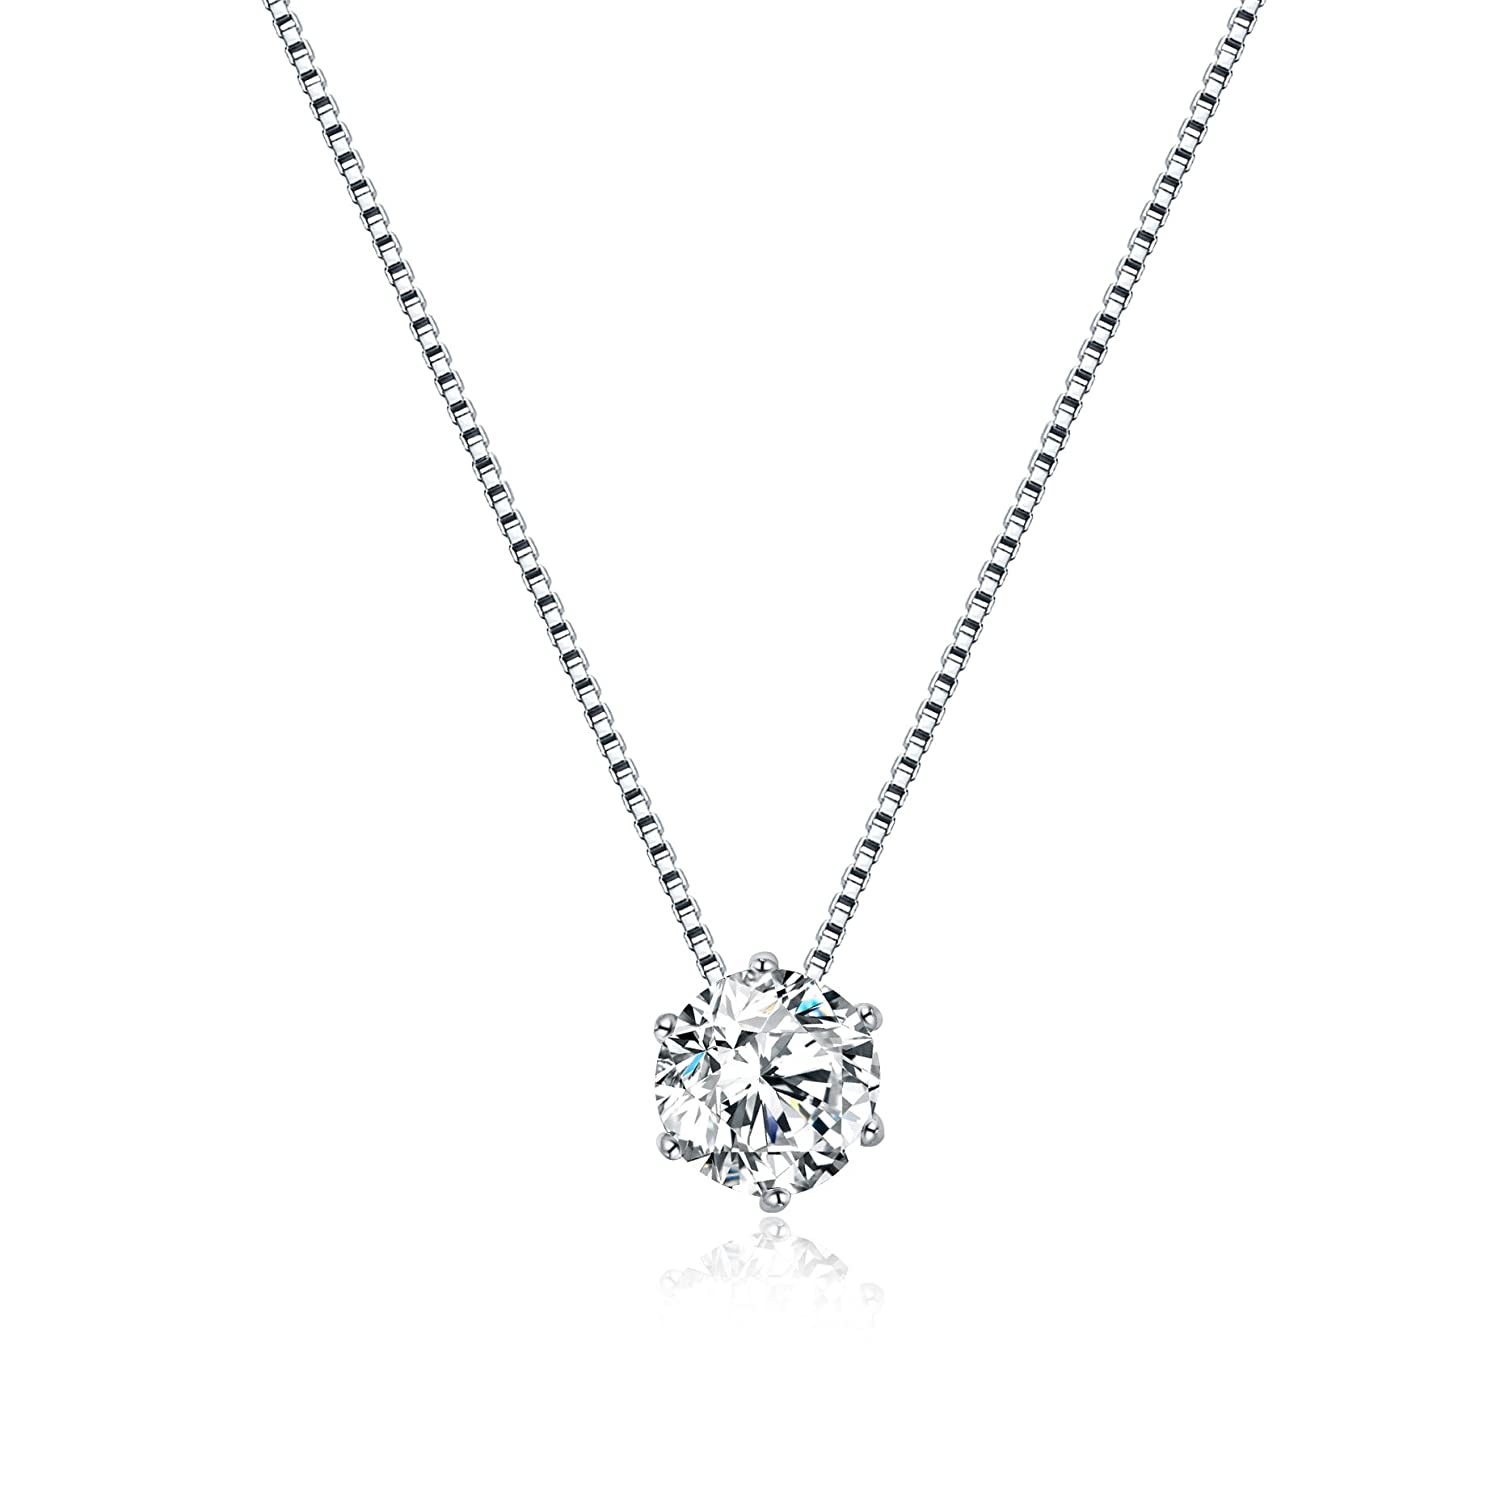 925 Sterling Silver 1ct Cubic Zirconia Solitaire Necklace, Cubic Zirconia Created Diamond Necklace, Dainty Floating Solitaire Necklace for Women